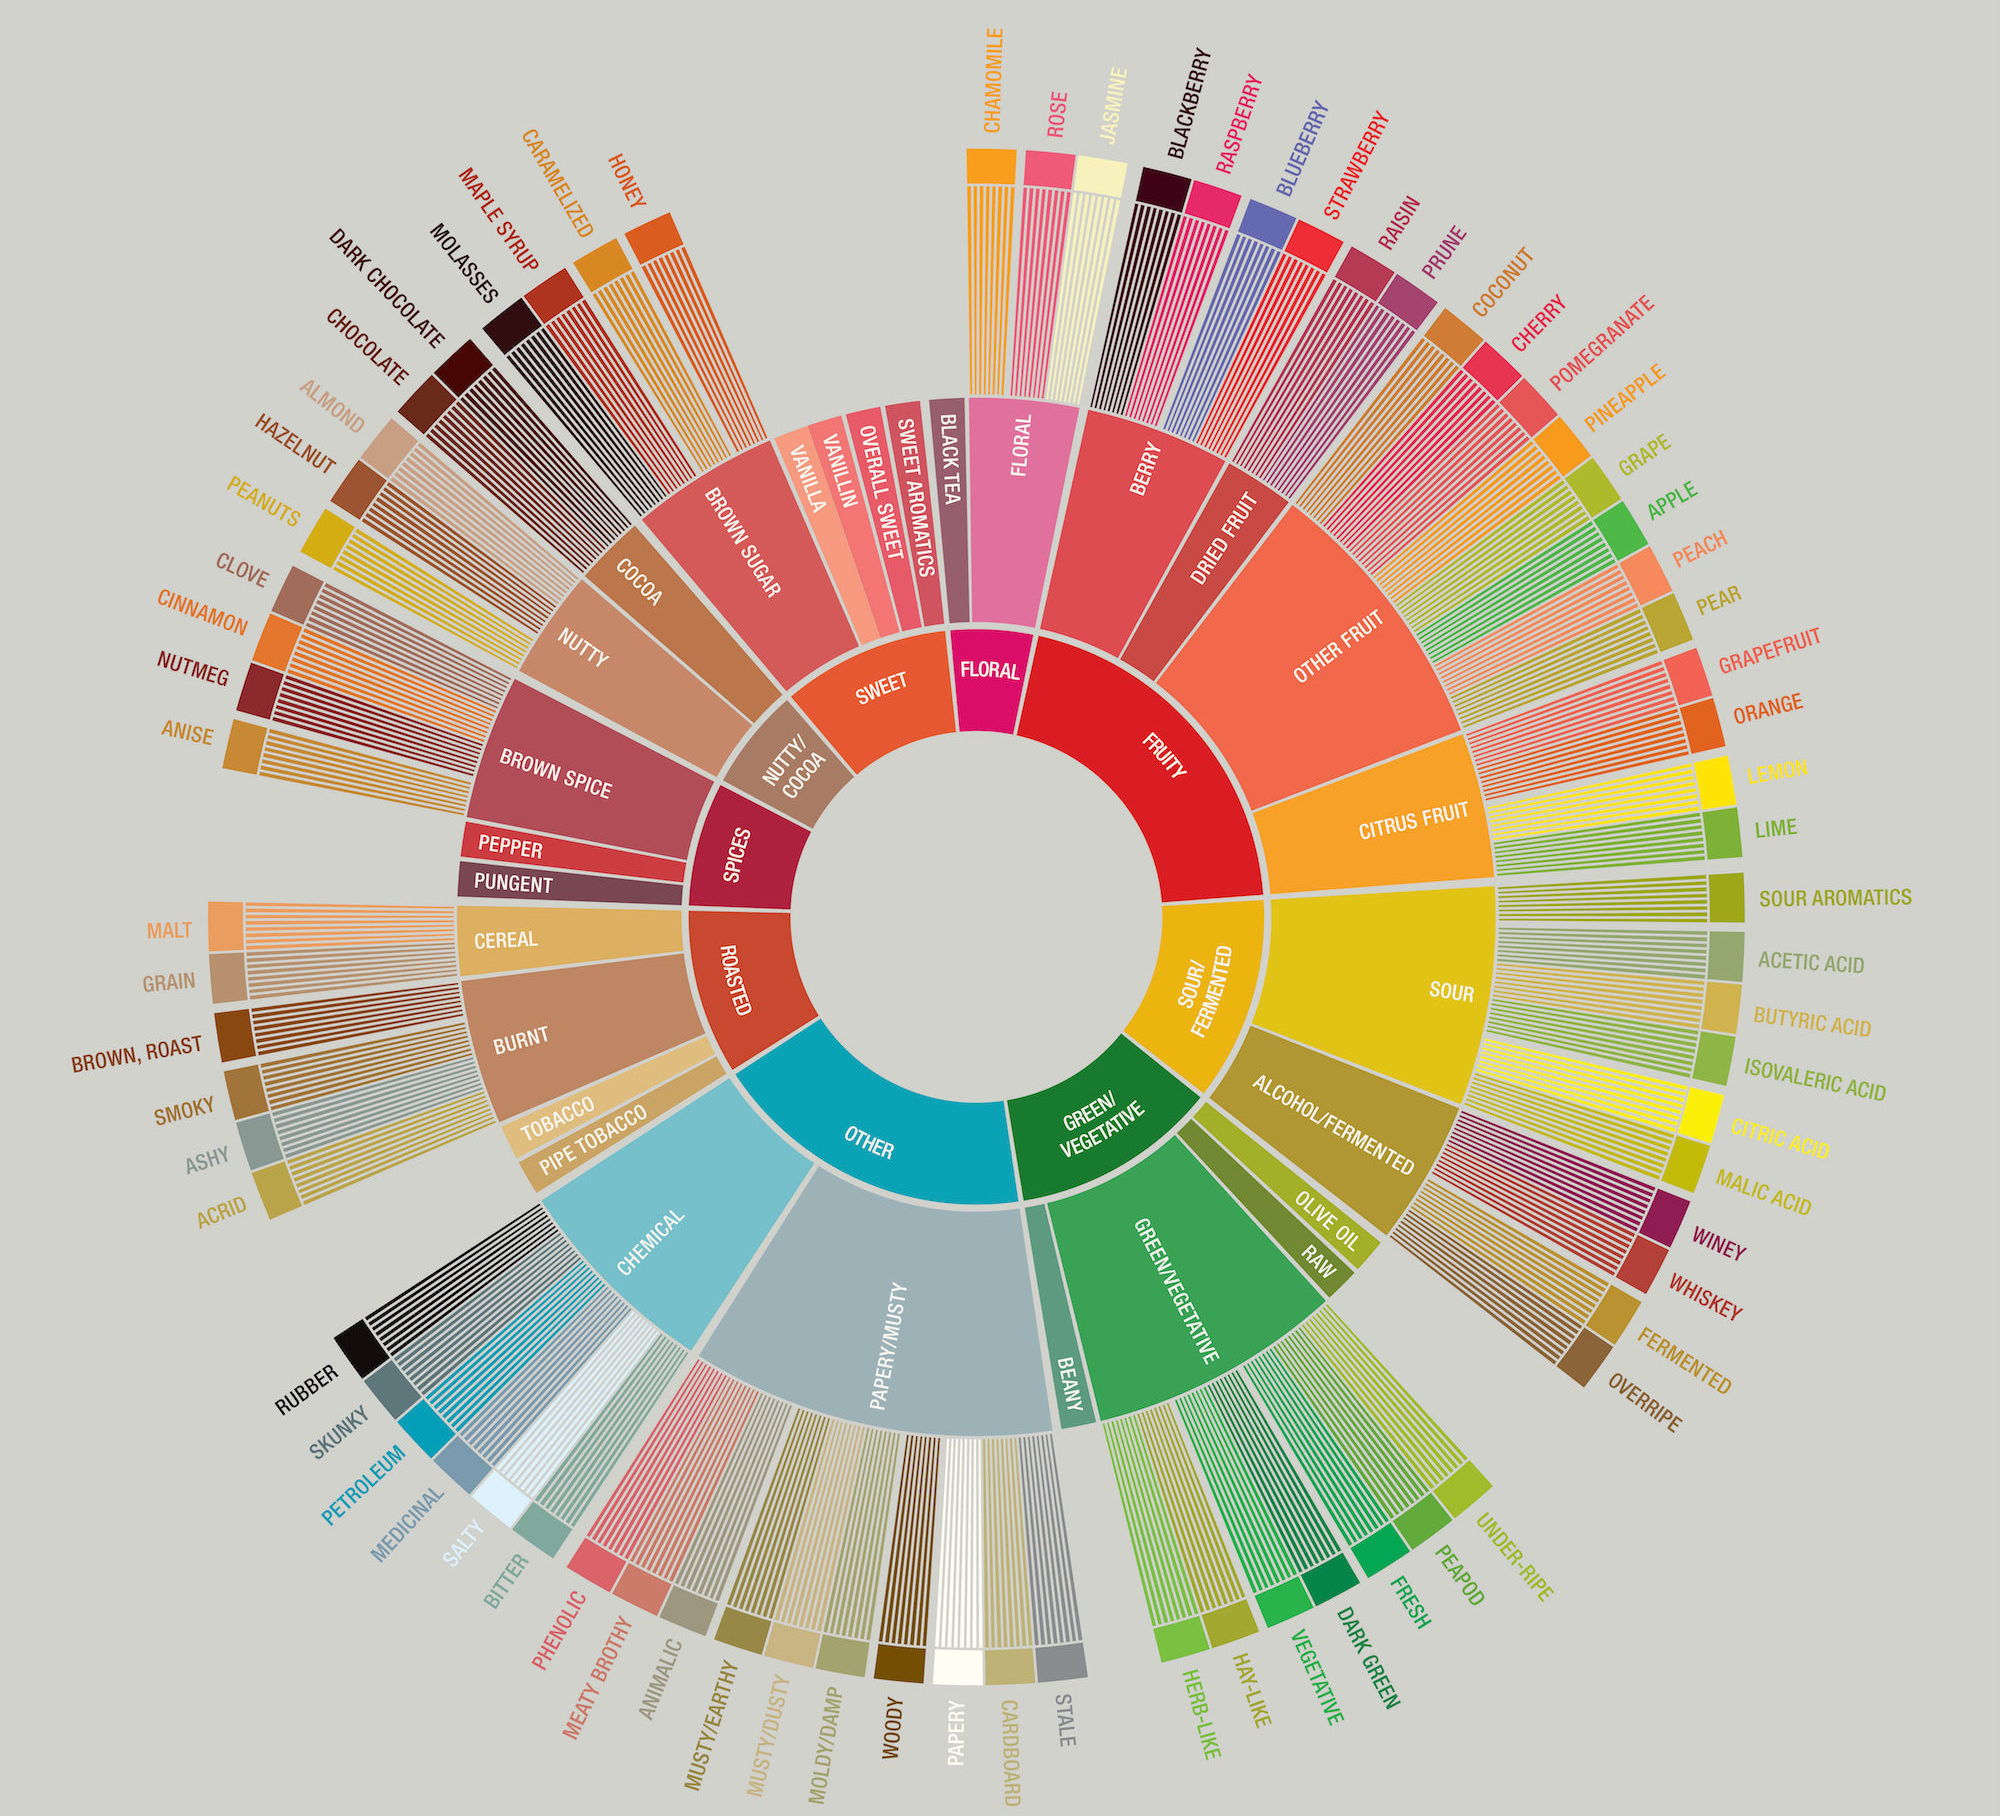 Specialty Coffee Association's Coffee Taster's Flavor Wheel is a colorful guide to the various flavors one might find when tasting coffee